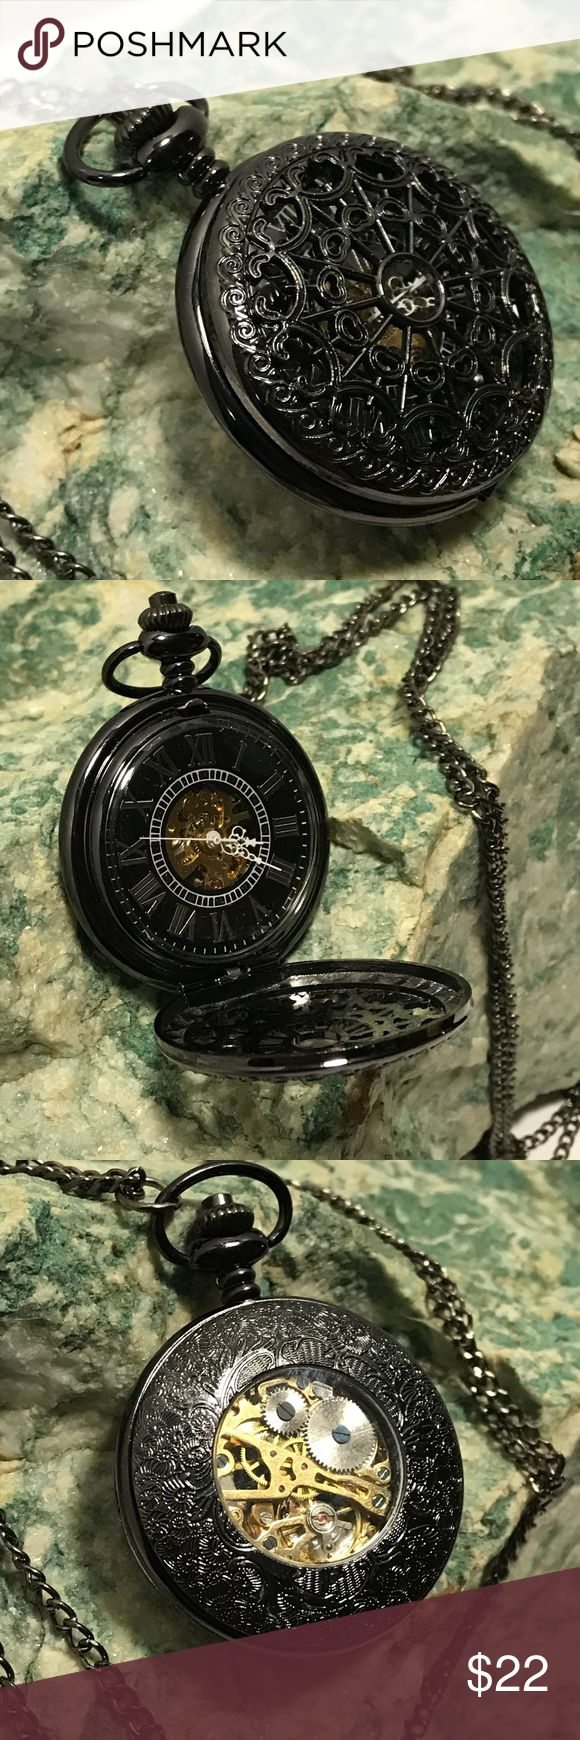 "Pocket Watch Necklace ⏱ Beautiful black caged cover over black face with Roman numerals. Lacey face opens with the push of the button on top. Measures 1.75"" round. Really go back in time as no batteries necessary - watch is WIND-UP ! Glass front and back shows inner movements as time ticks away. Necklace chain is a long 32"". NWOT. Fun accessory. #Steampunk ⏱ Accessories Watches"